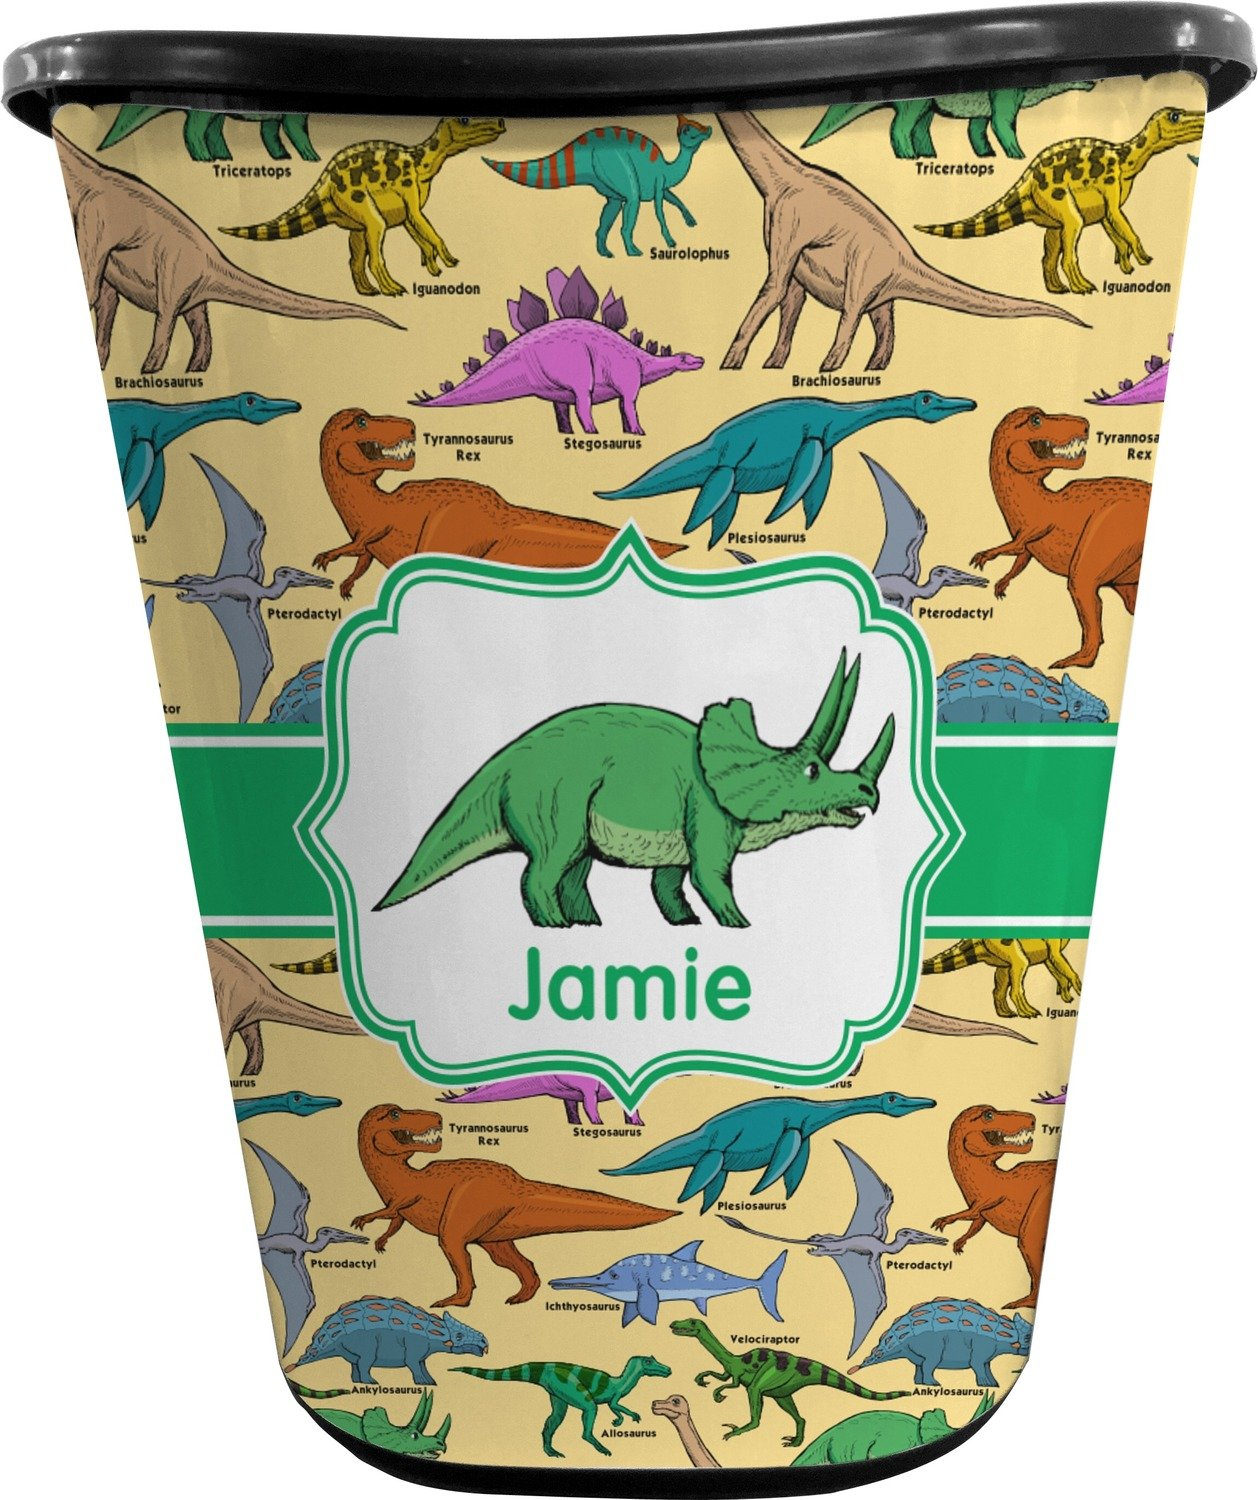 RNK Shops Dinosaurs Waste Basket - Double Sided (Black) (Personalized) by RNK Shops